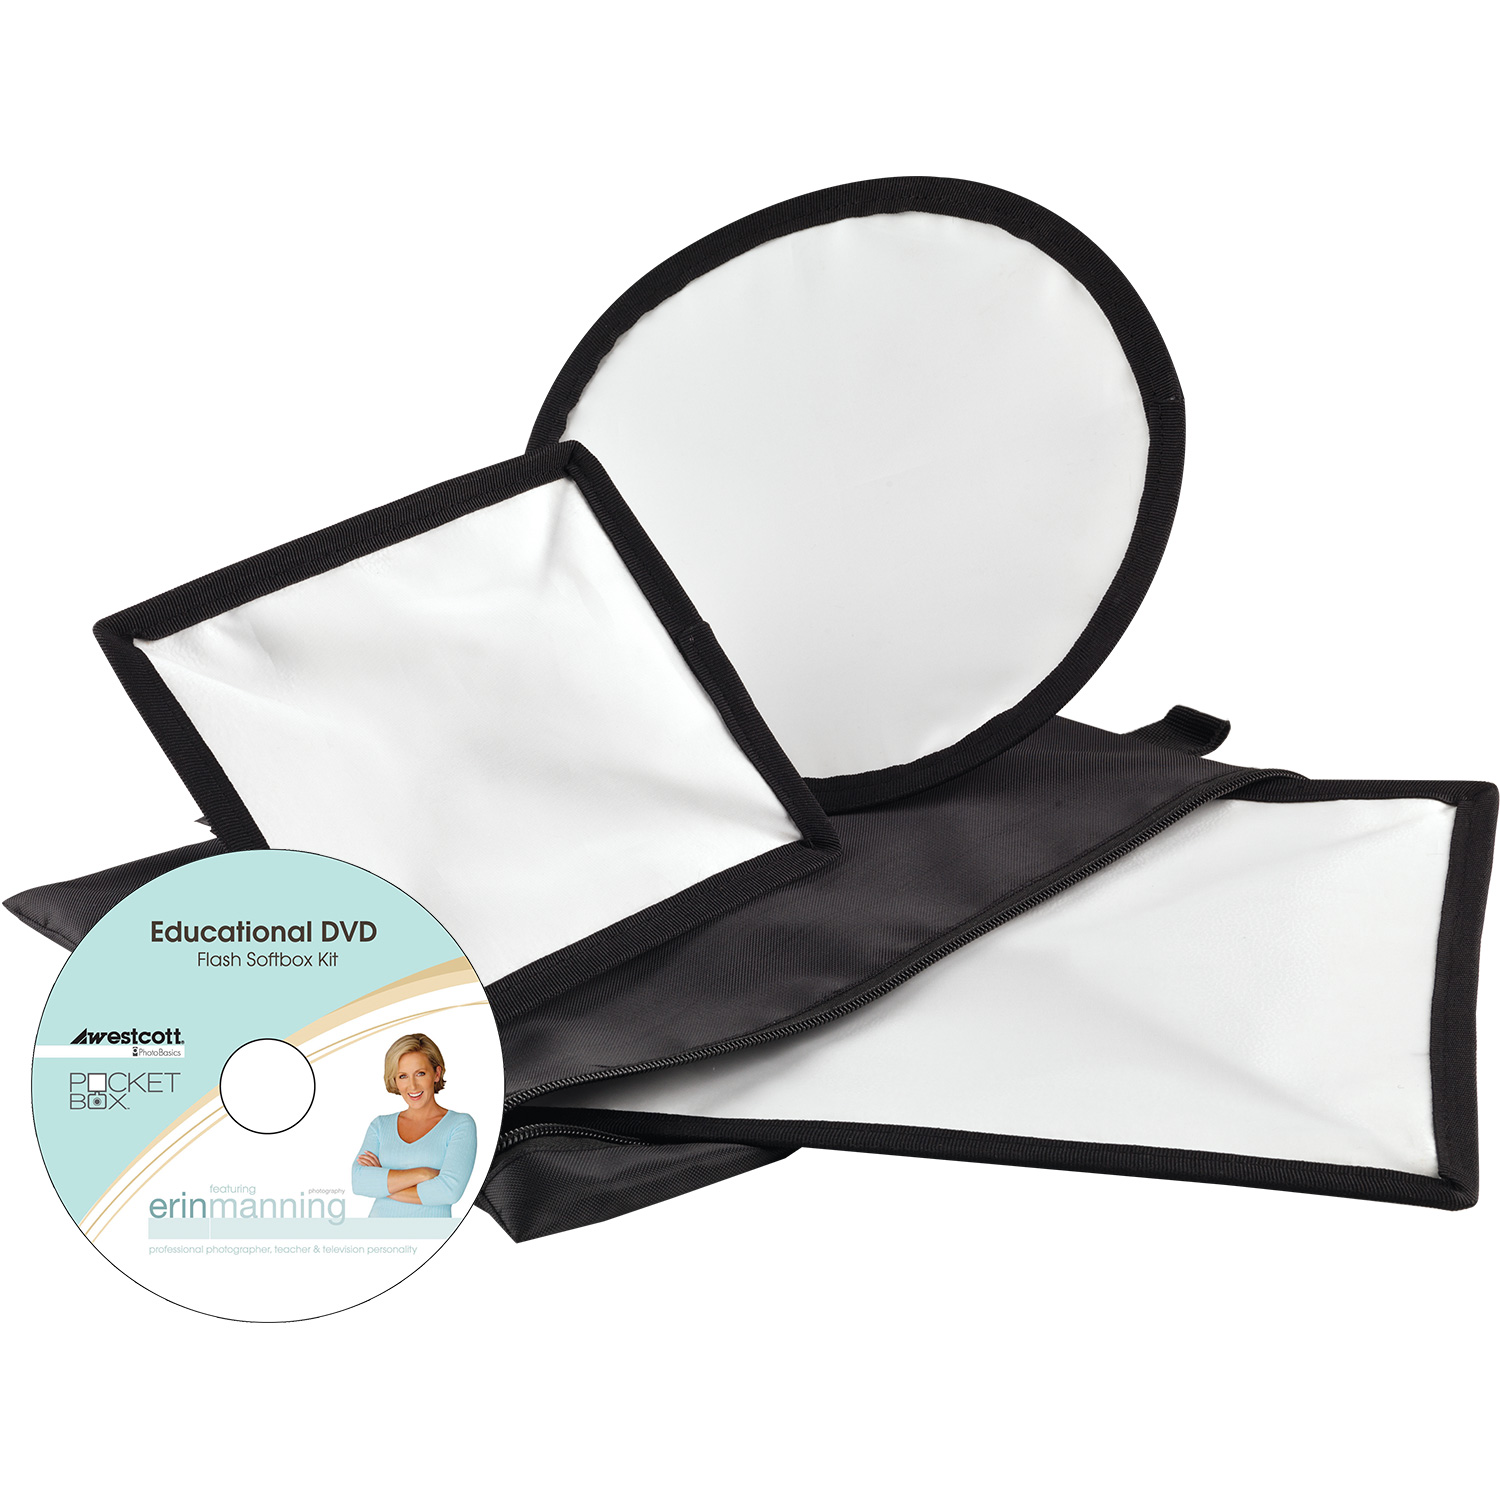 Pocket Box Erin Manning Speedlite Softbox Kit